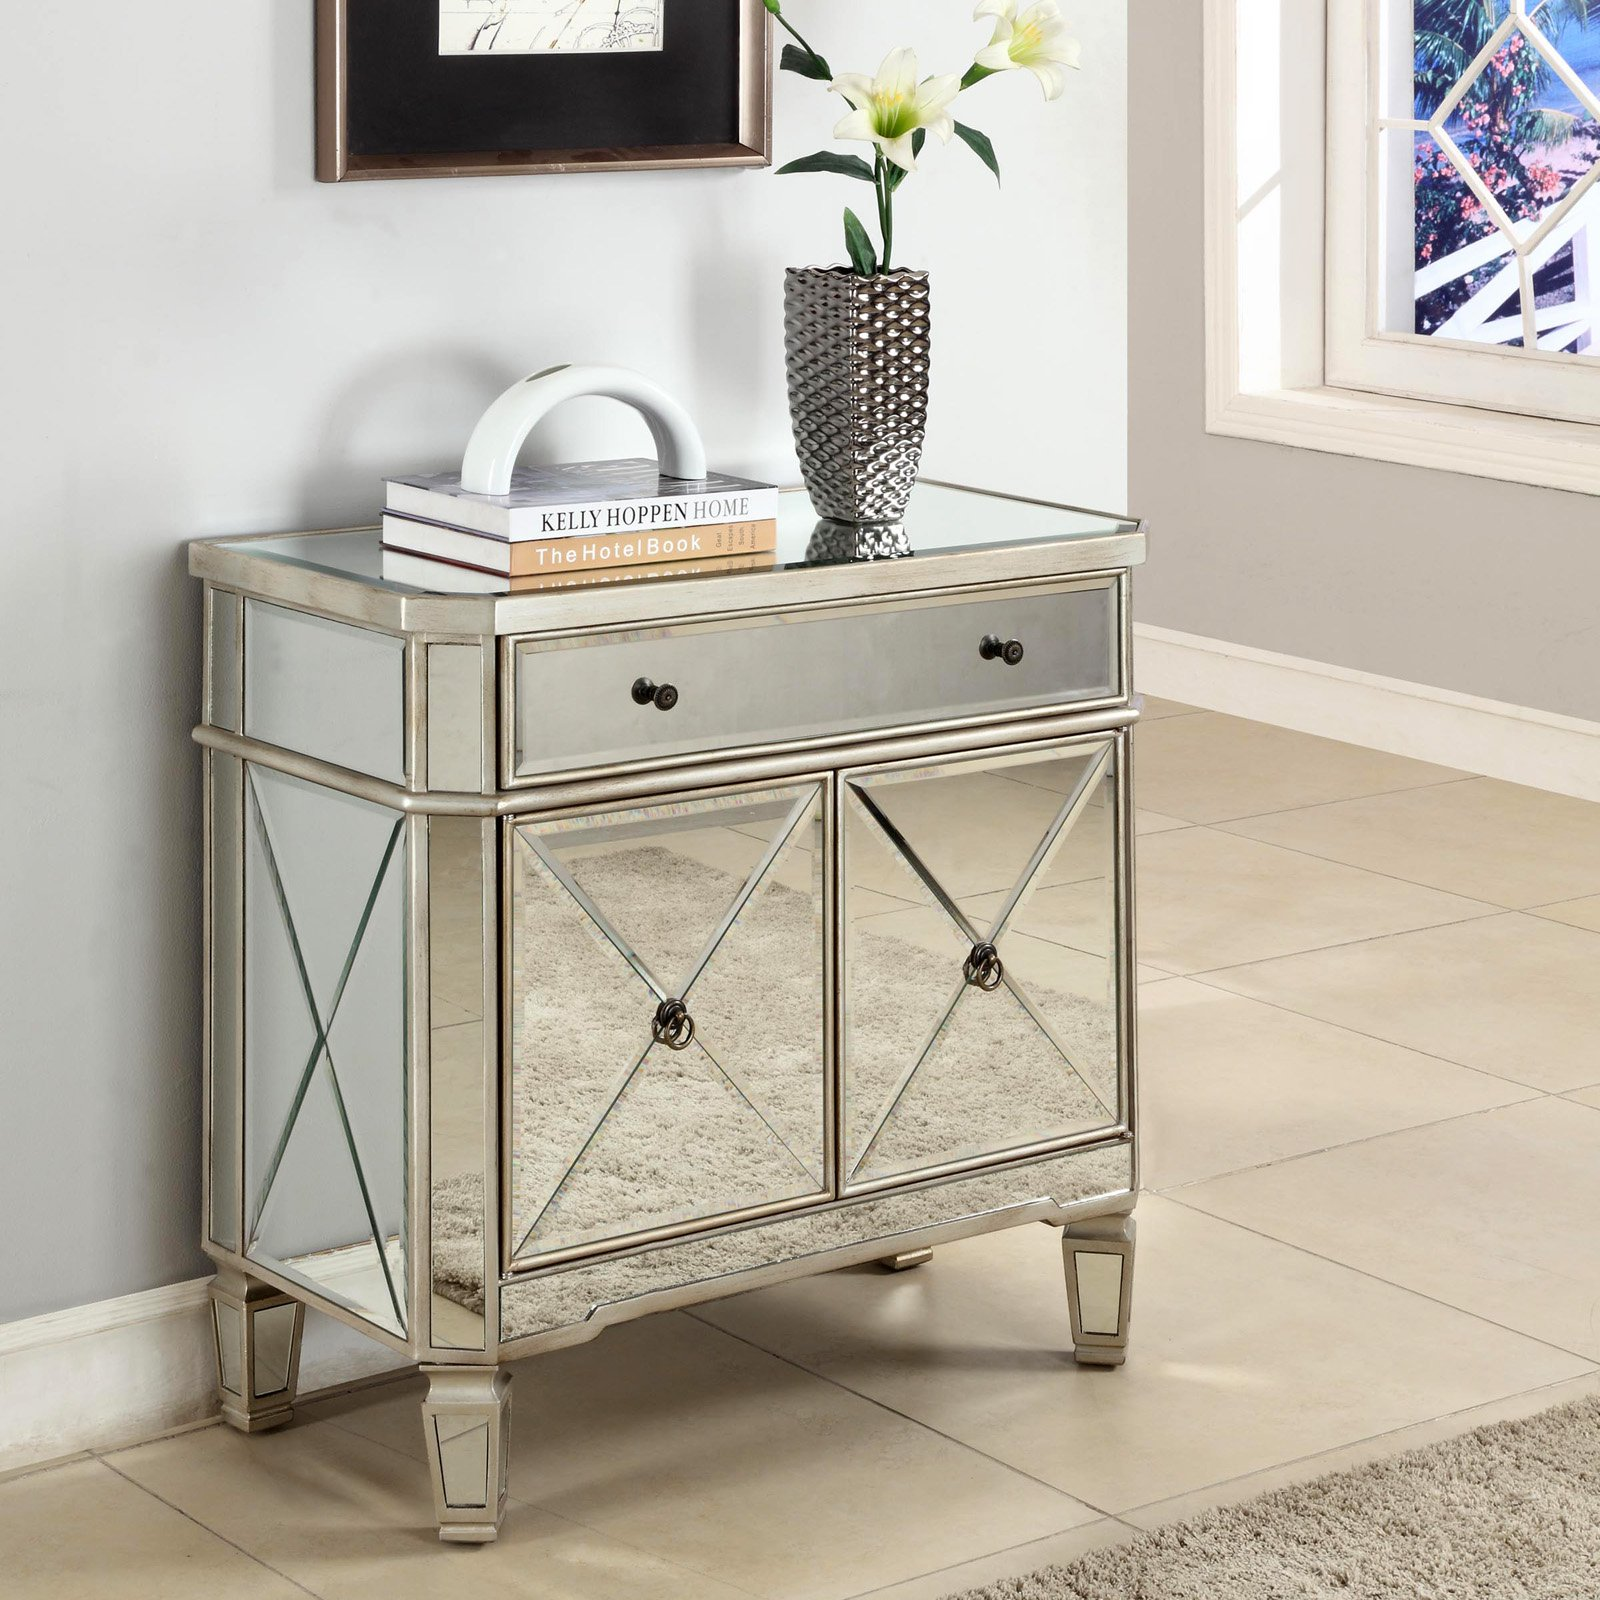 the super best mirrored bronze nightstand ture hotxpress powell door console triple dressing table mirror dark wood metal drum square base side steel galvanized pipe for legs